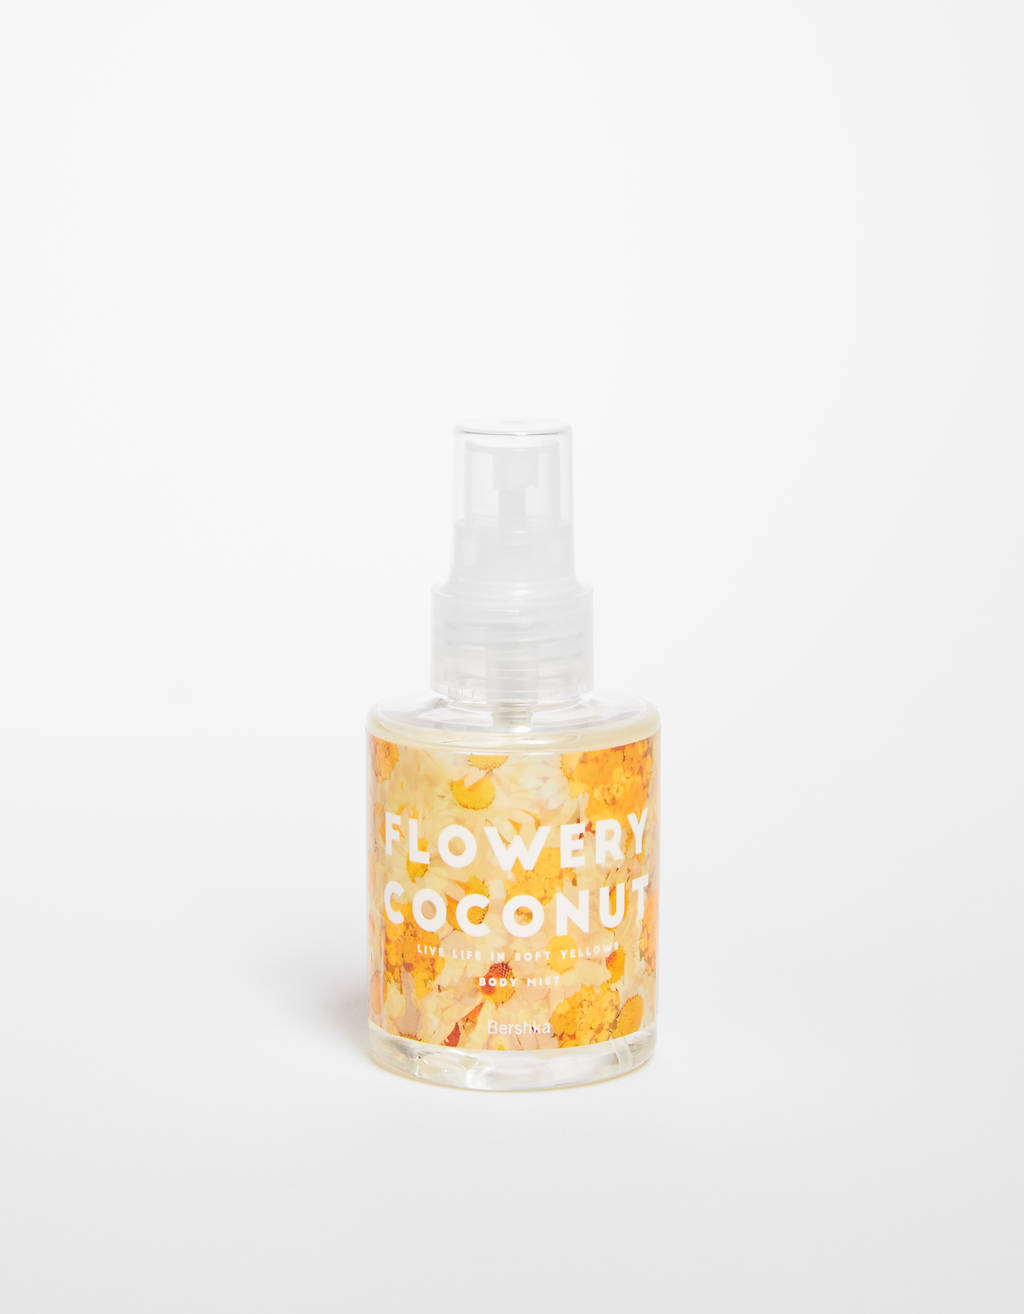 Flowery Coconut Body Mist 100ml